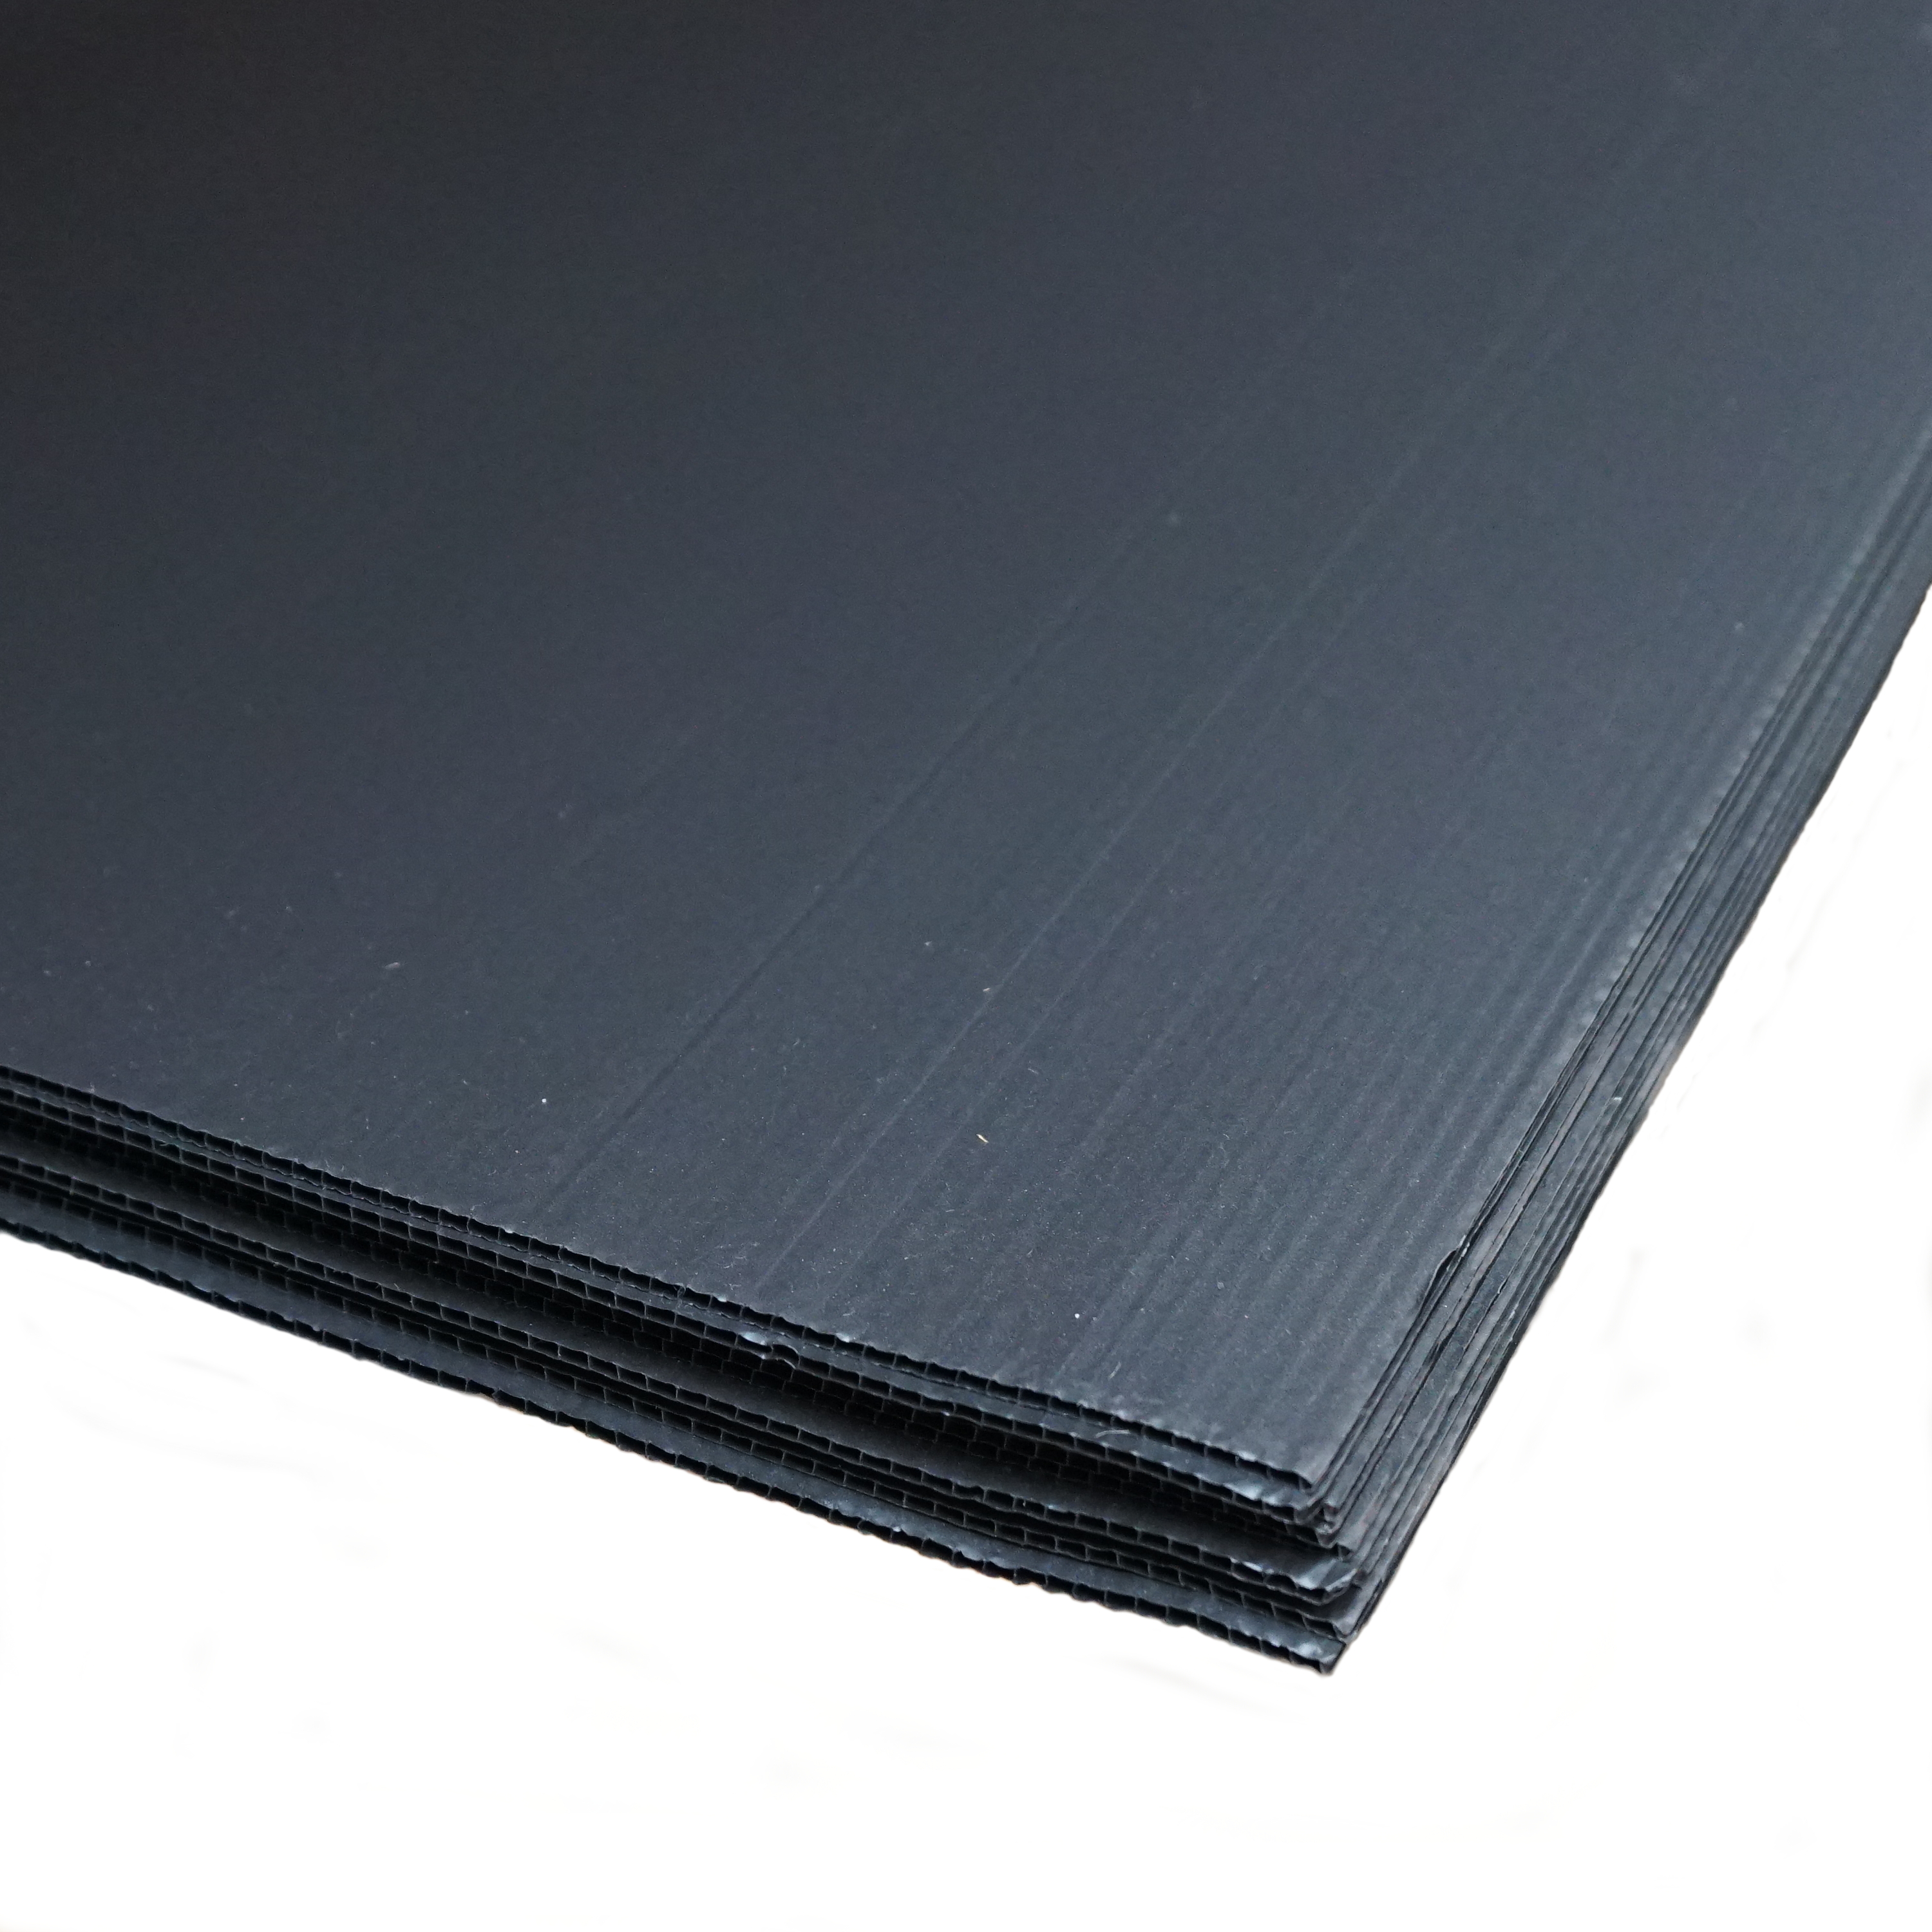 Floor Protection 2.4m x 1.2m x 2mm Black Protection Board